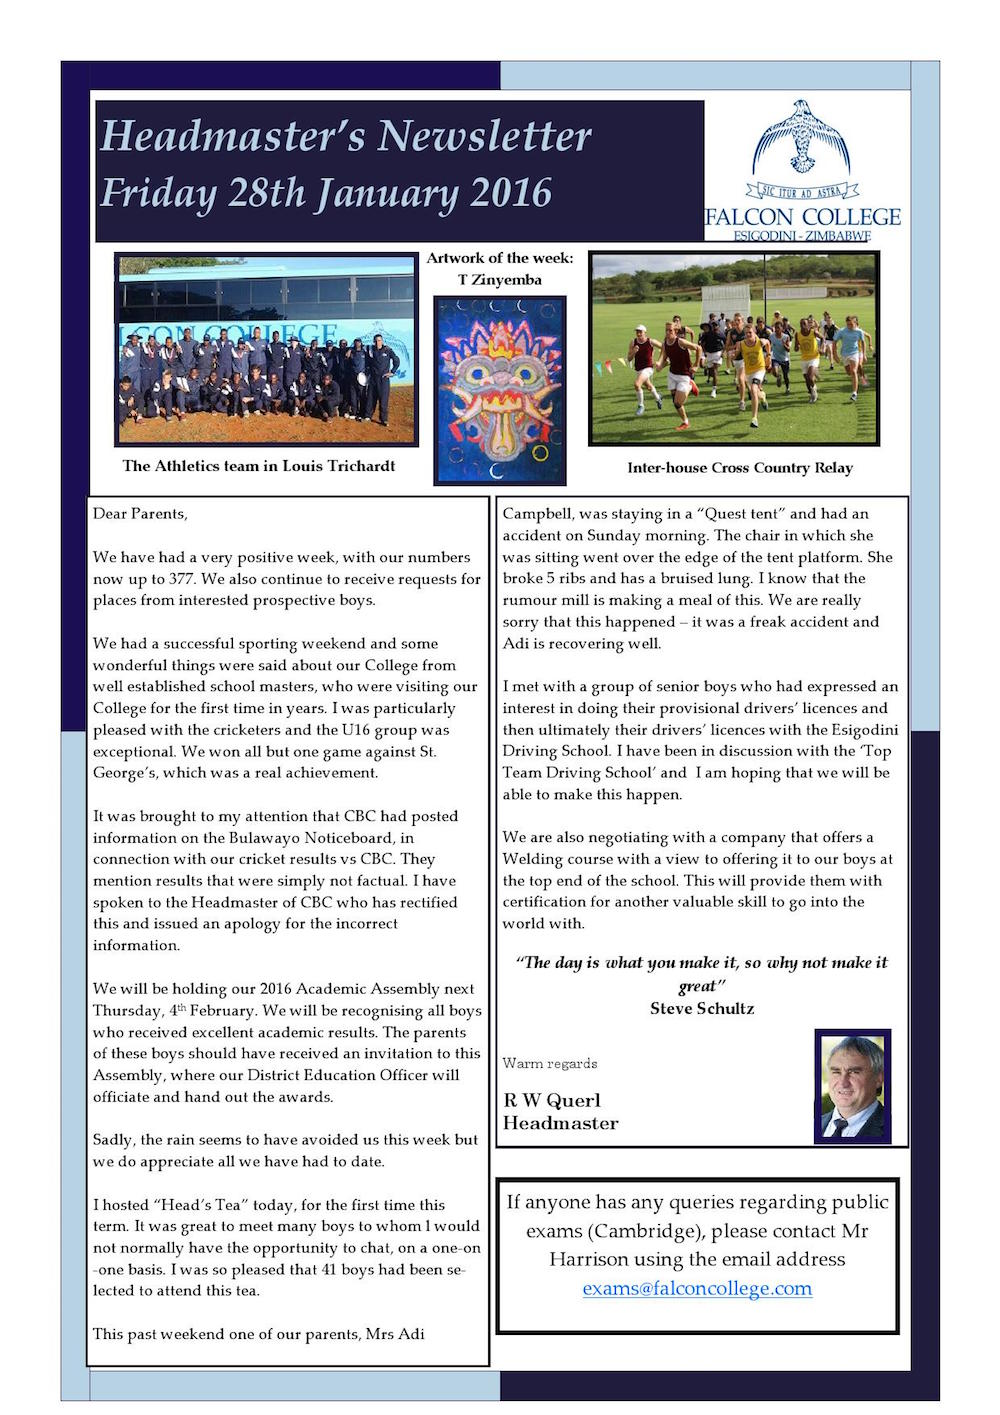 Headmaster's Newsletter Friday 28th January 2016_000001